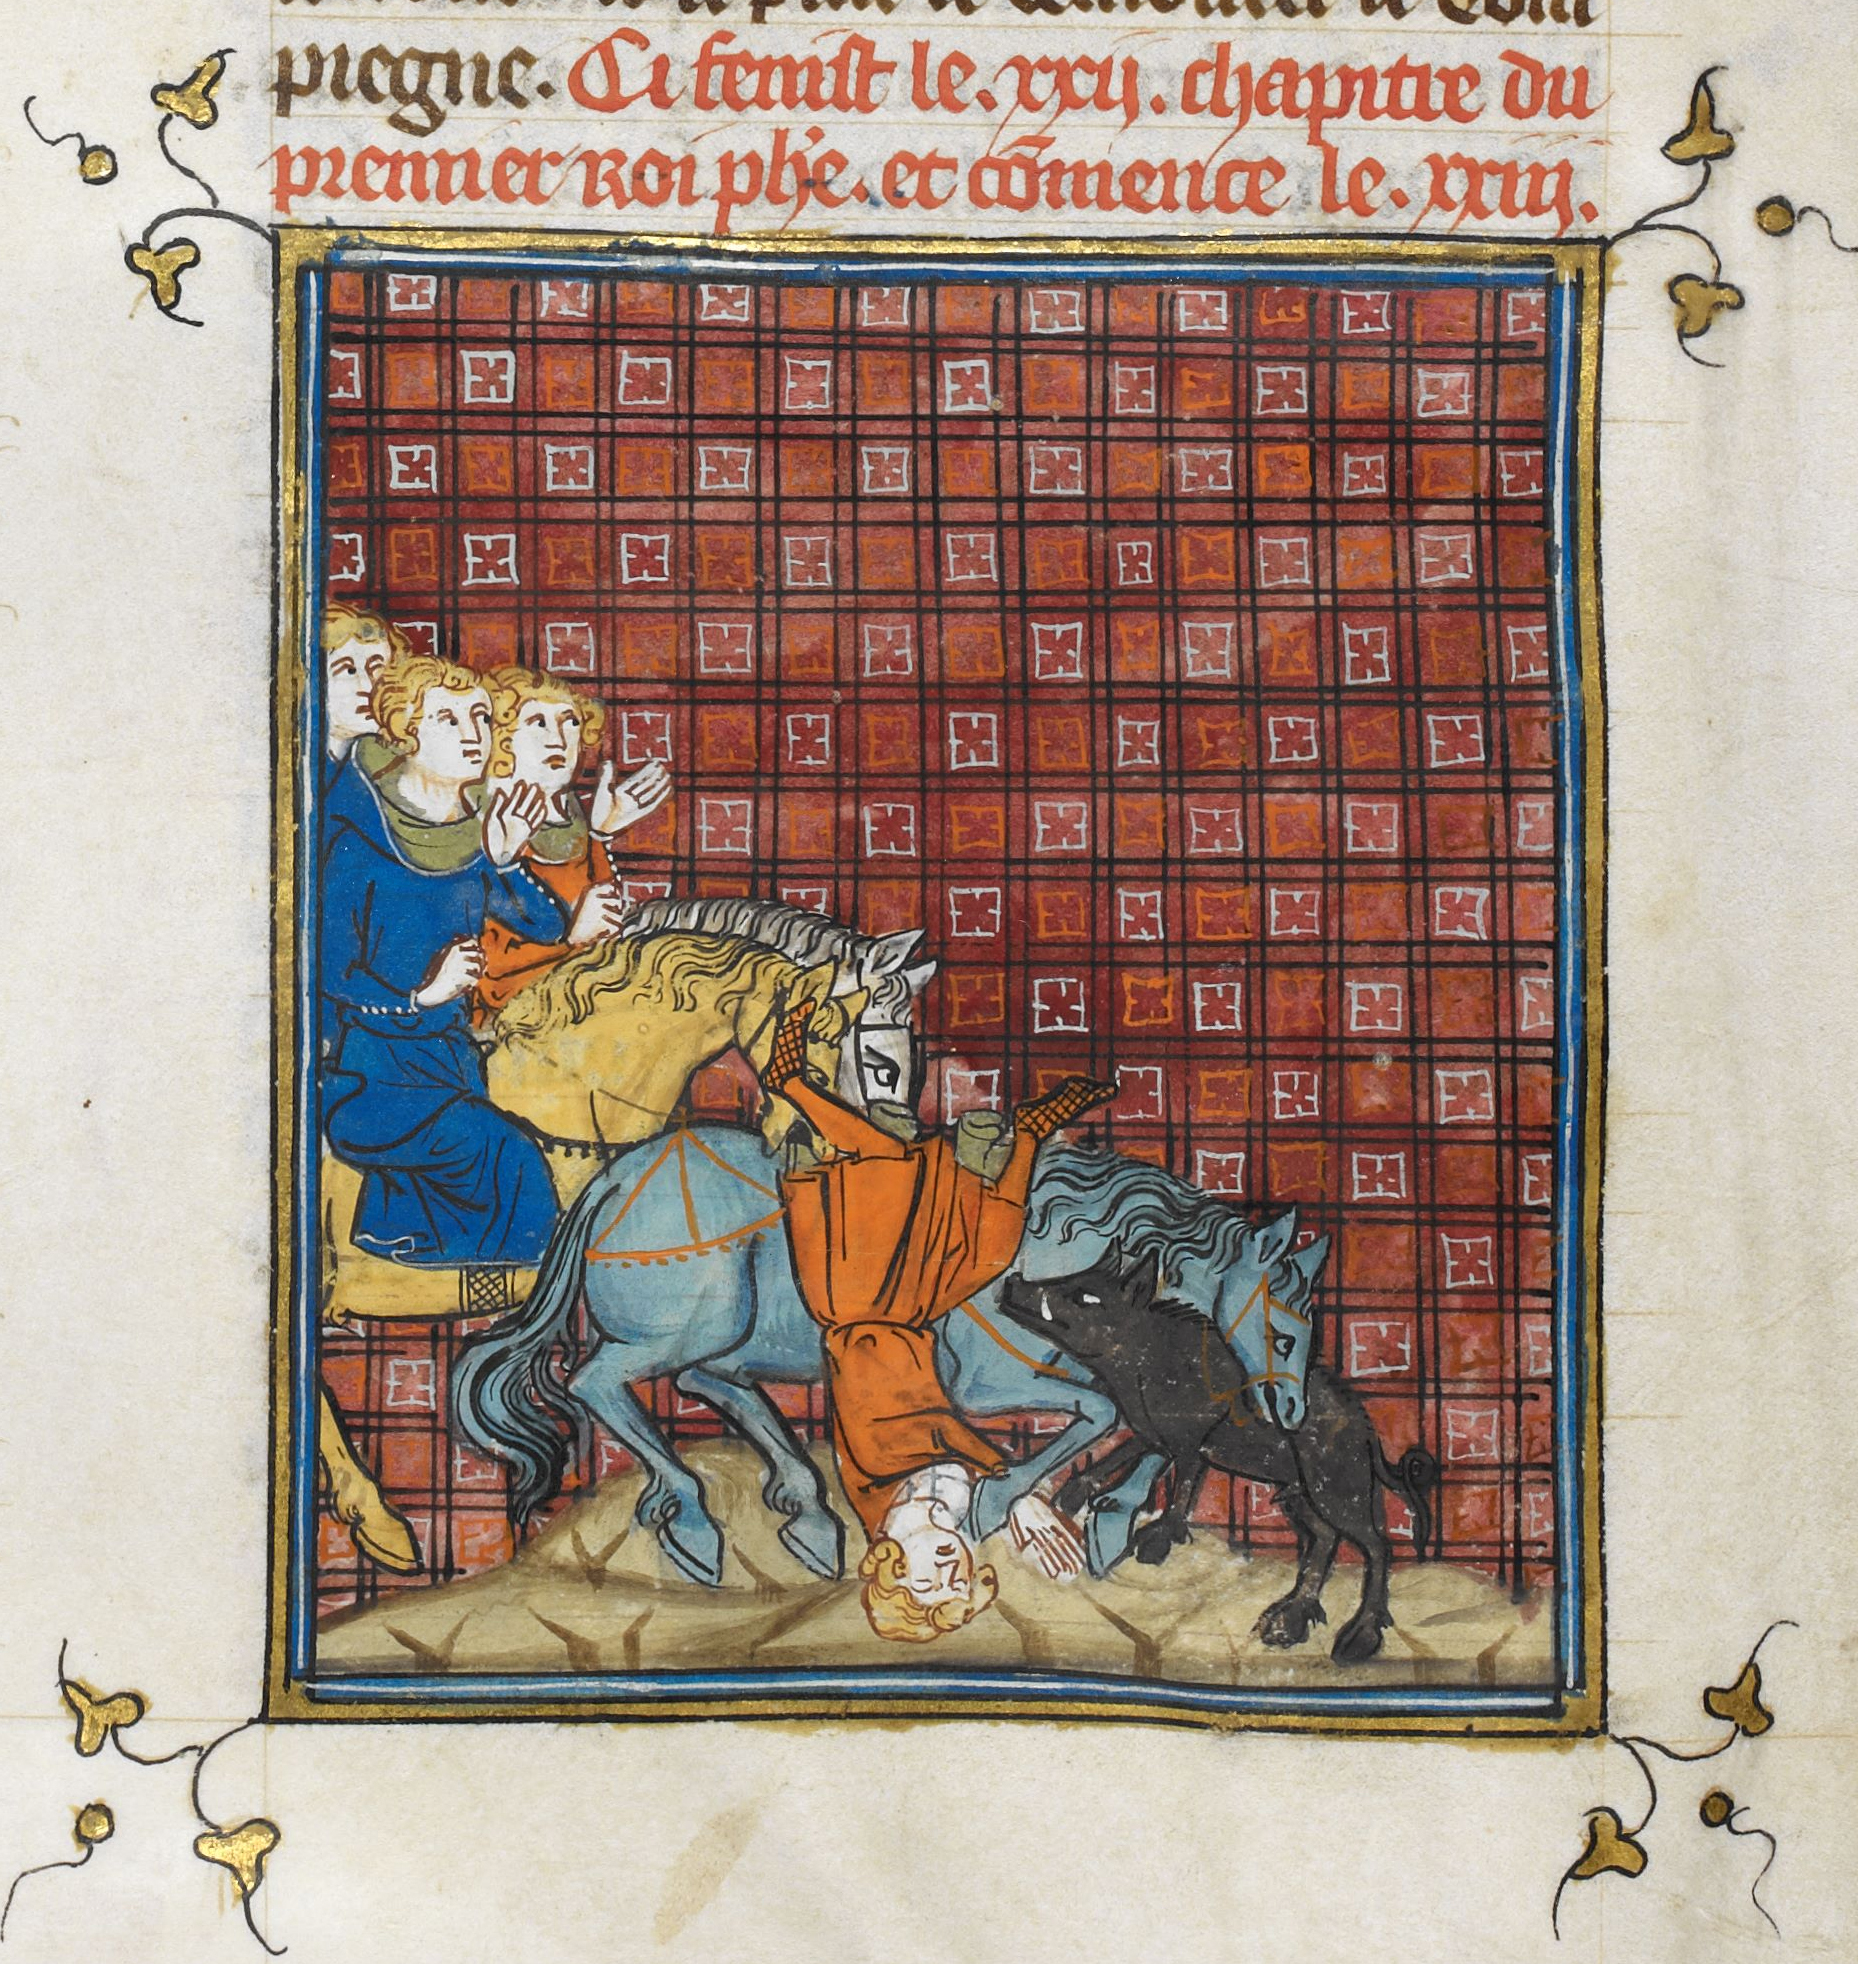 Philip of France (1131)